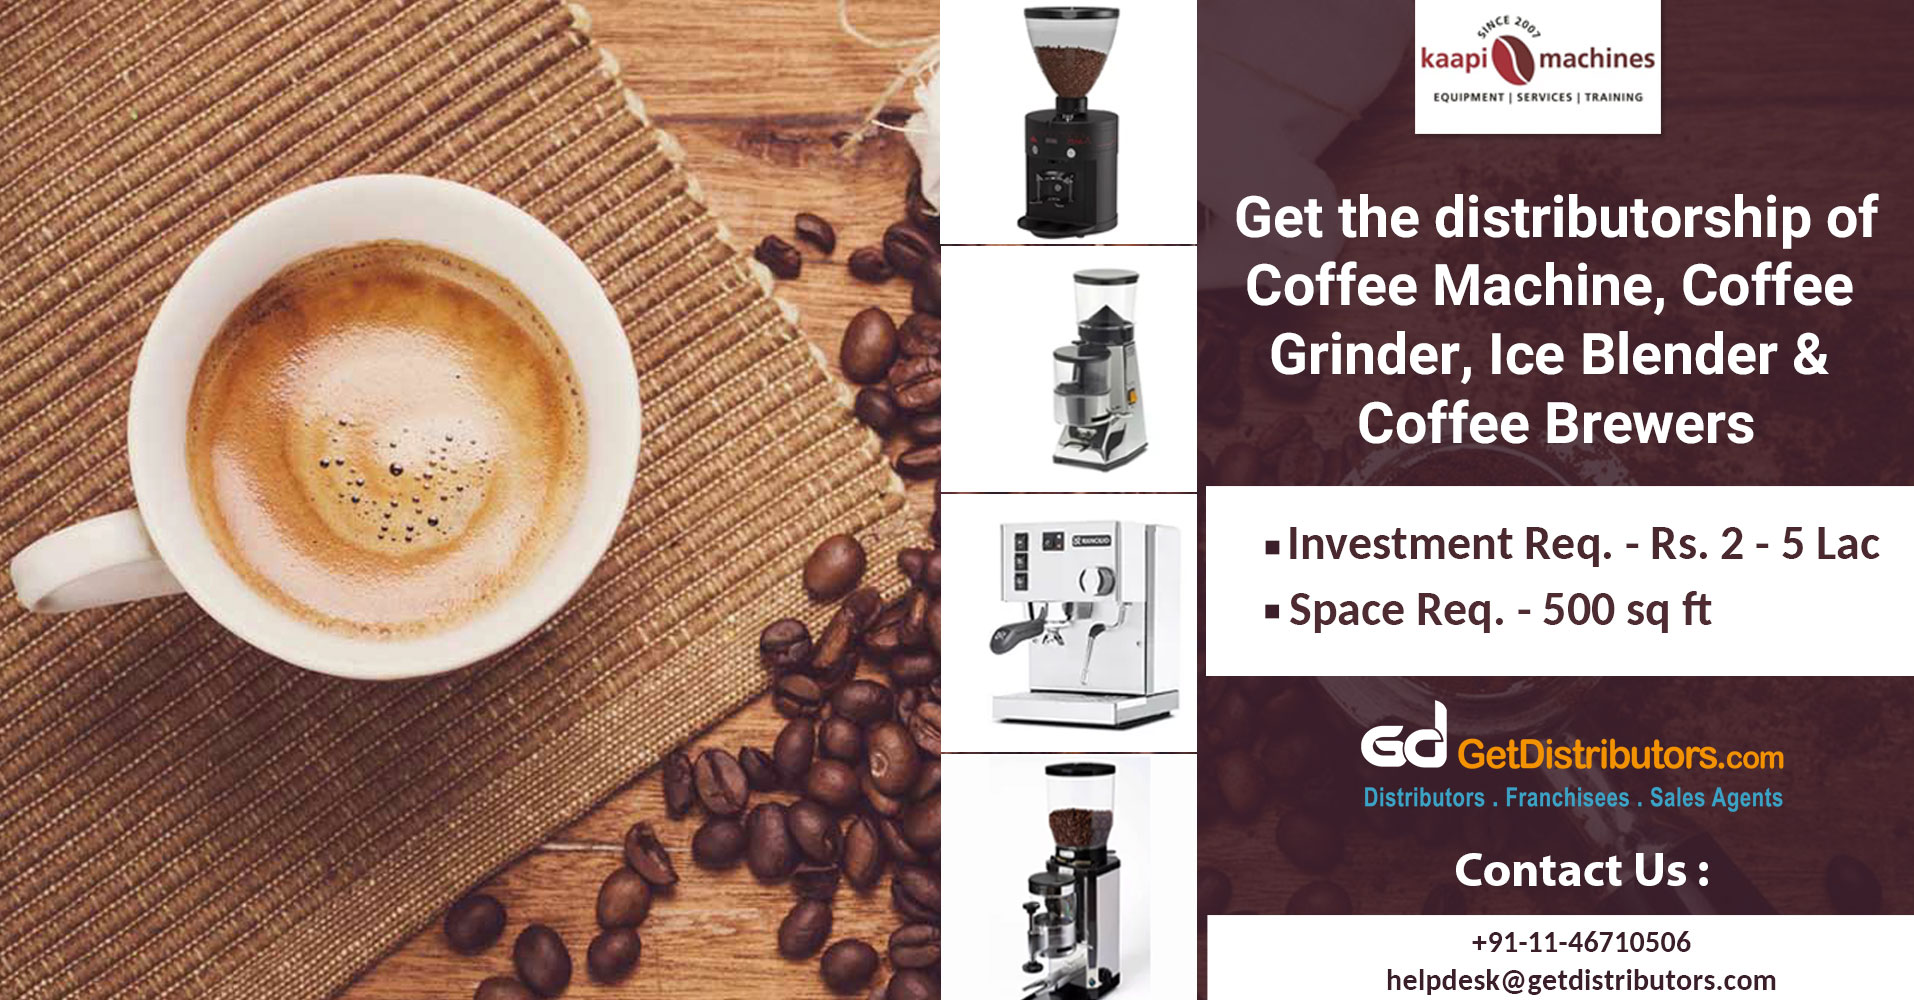 Efficient & Reliable Coffee Machines